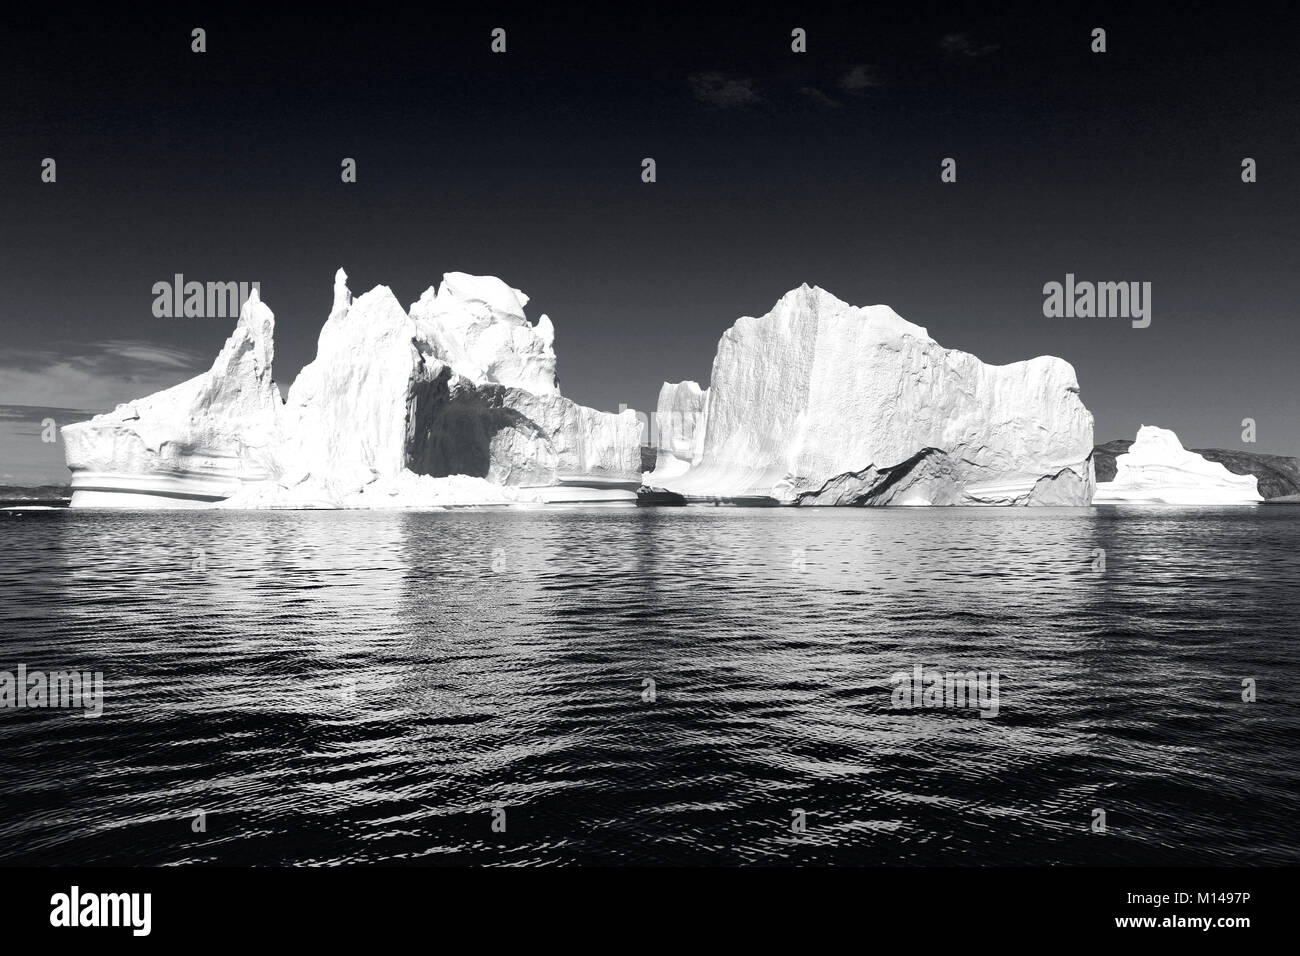 Icebergs from the icefjord, Ilulissat, Disko Bay, Greenland, Polar Regions - Stock Image